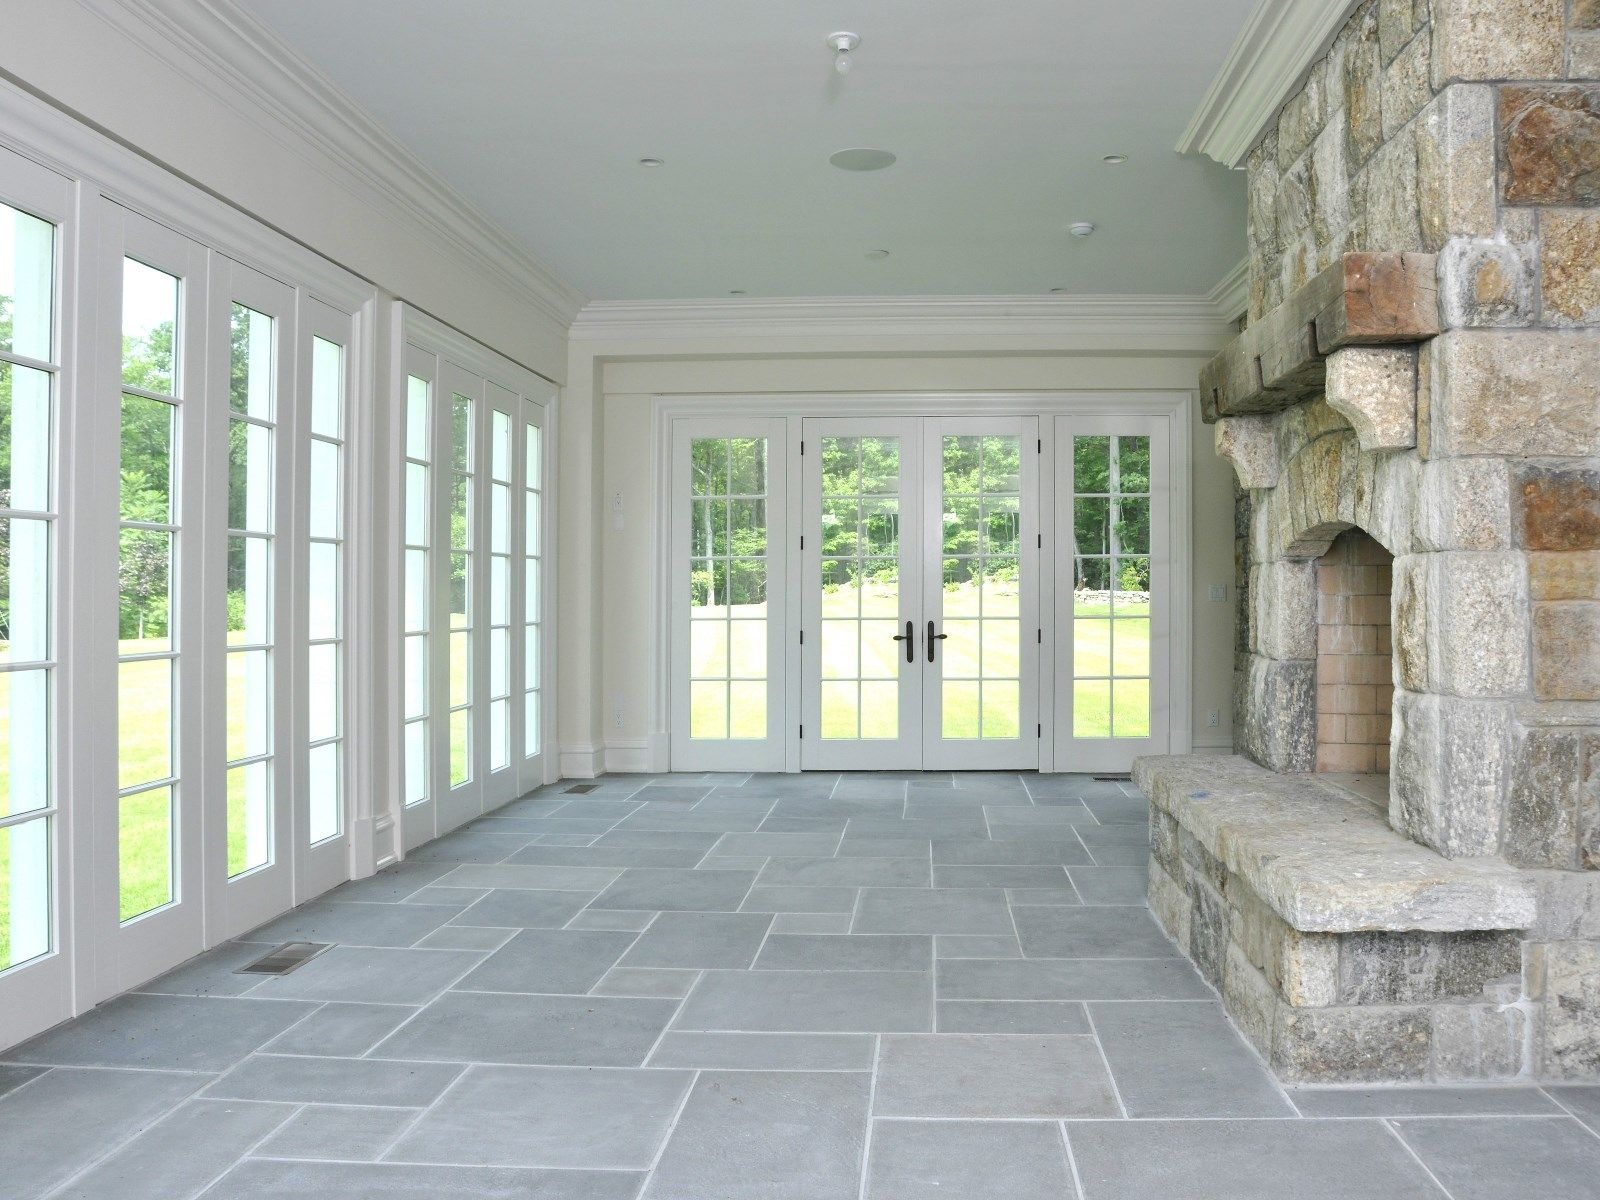 Window ideas for a sunroom  magnificent backcountry estate  sun room  pinterest  porch